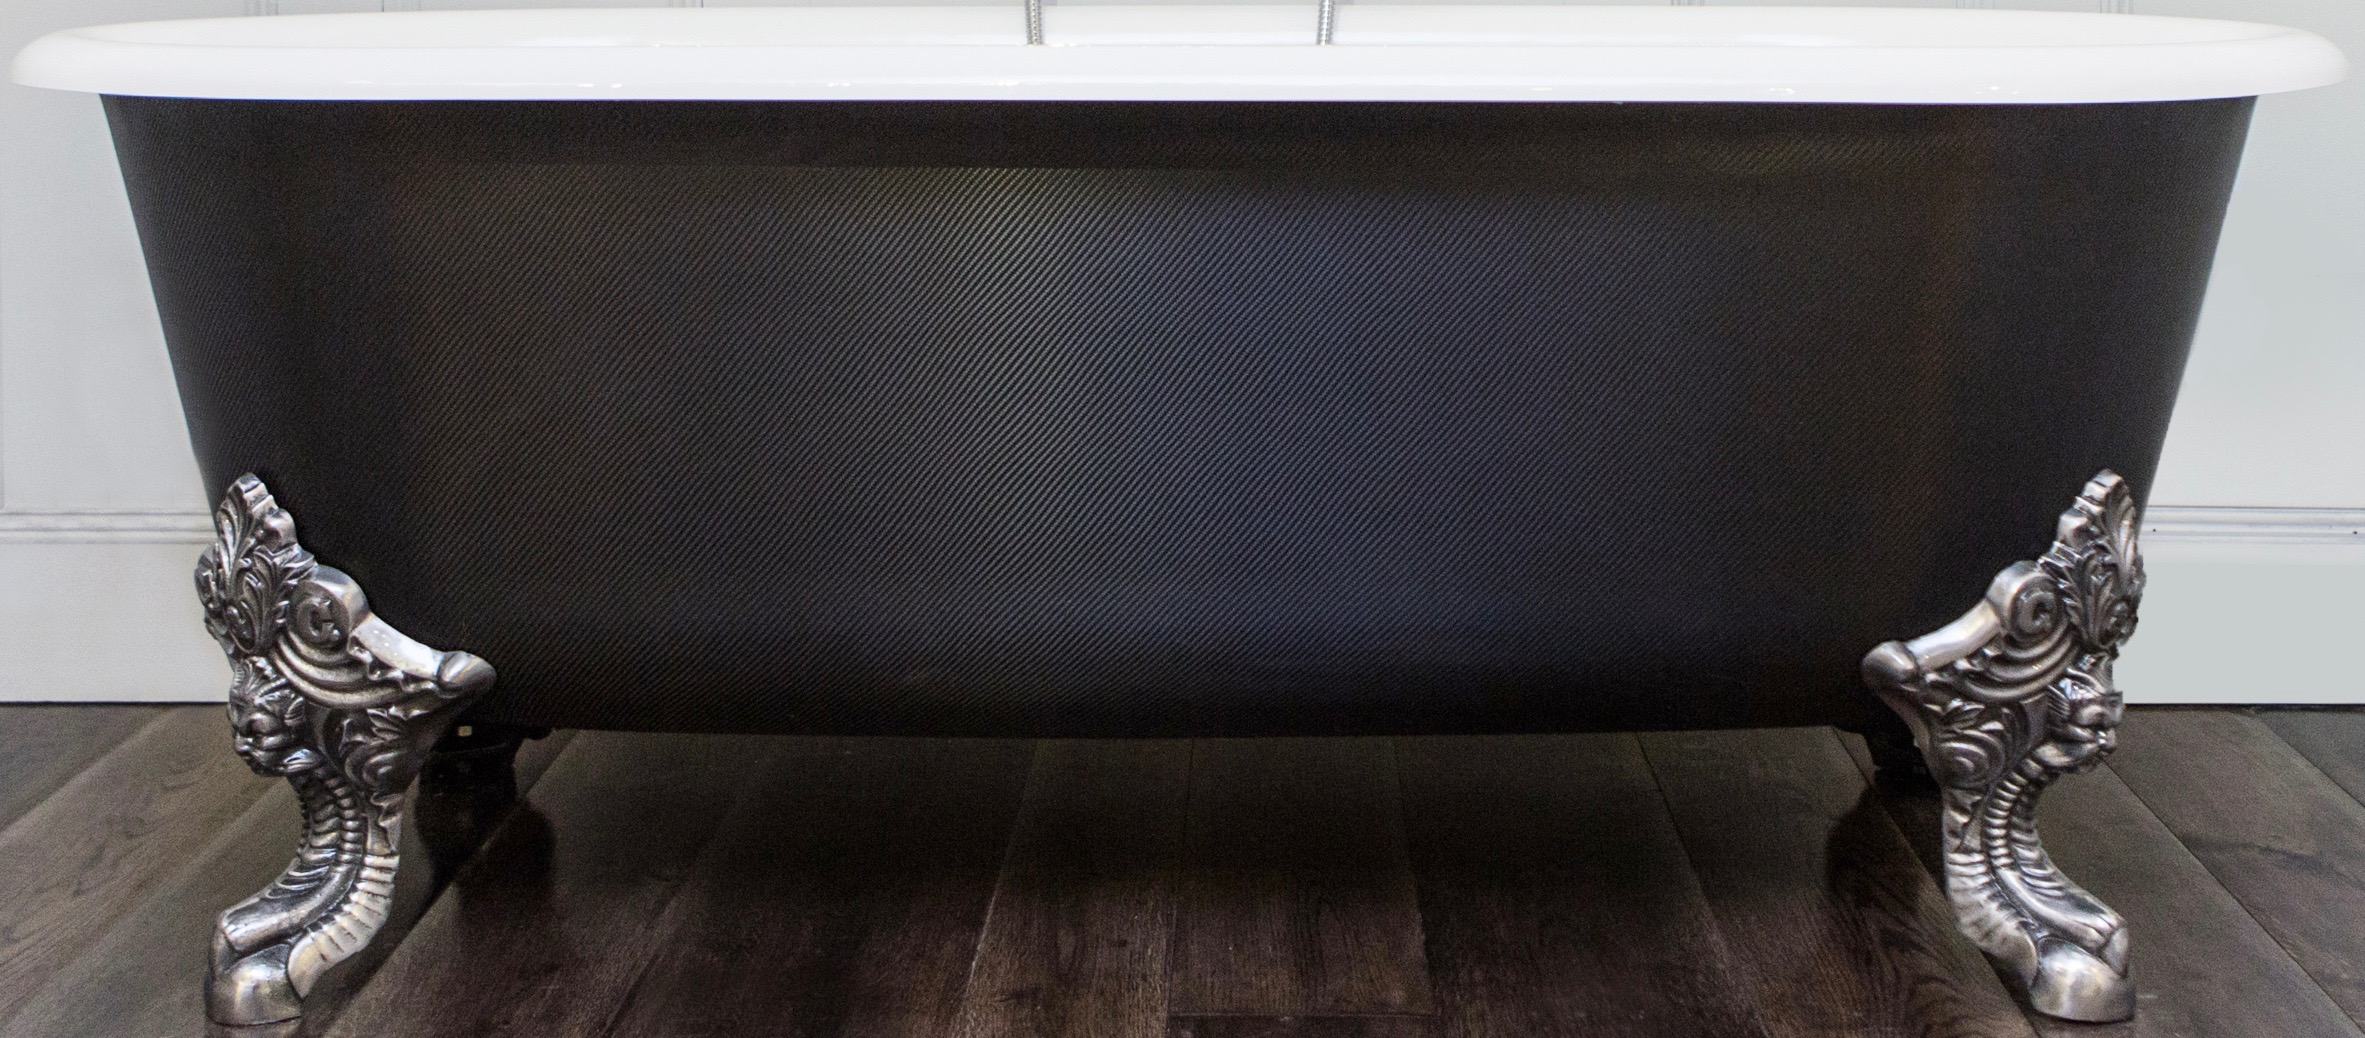 carbon fibre freestanding bath tub with polished metal feet on wooden bathroom floor chadder and co